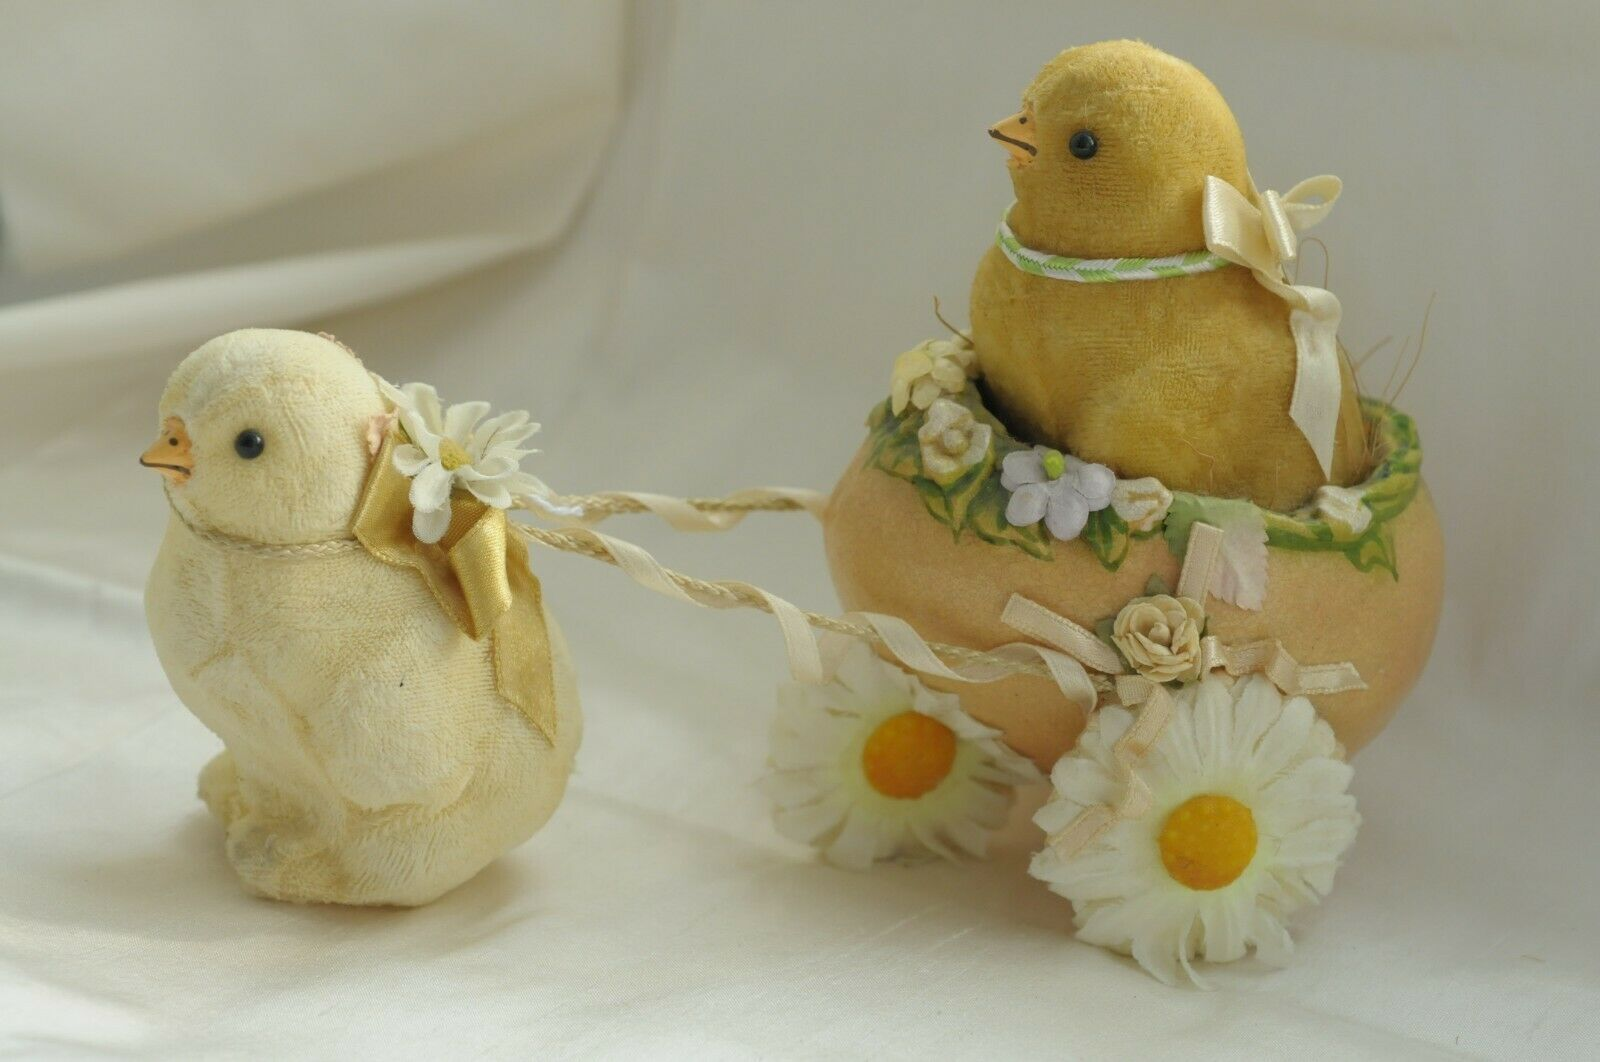 Vintage Easter Holiday Little Chicks Decor Ebay With Images